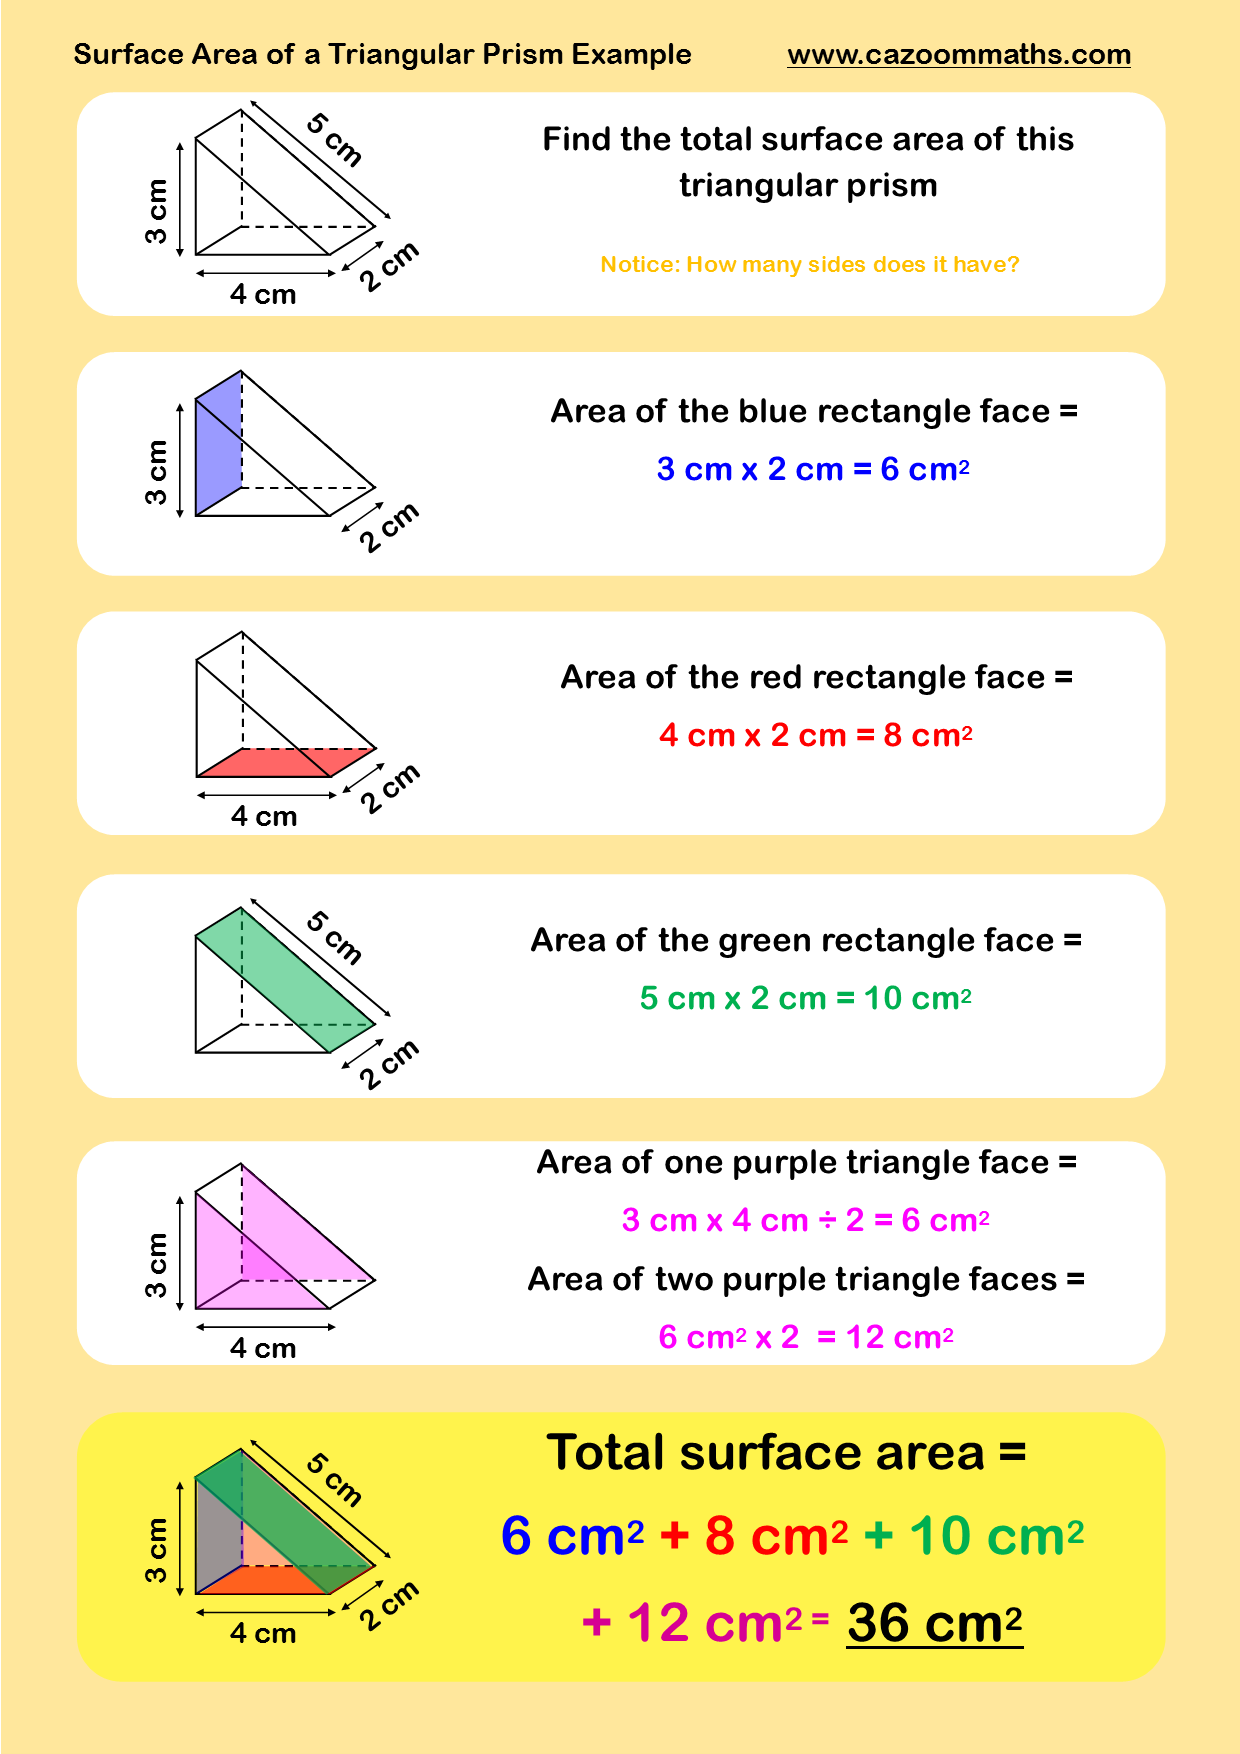 Uncategorized Surface Area Of A Triangular Prism Worksheet surface area of a triangular prism example tutoring pinterest example